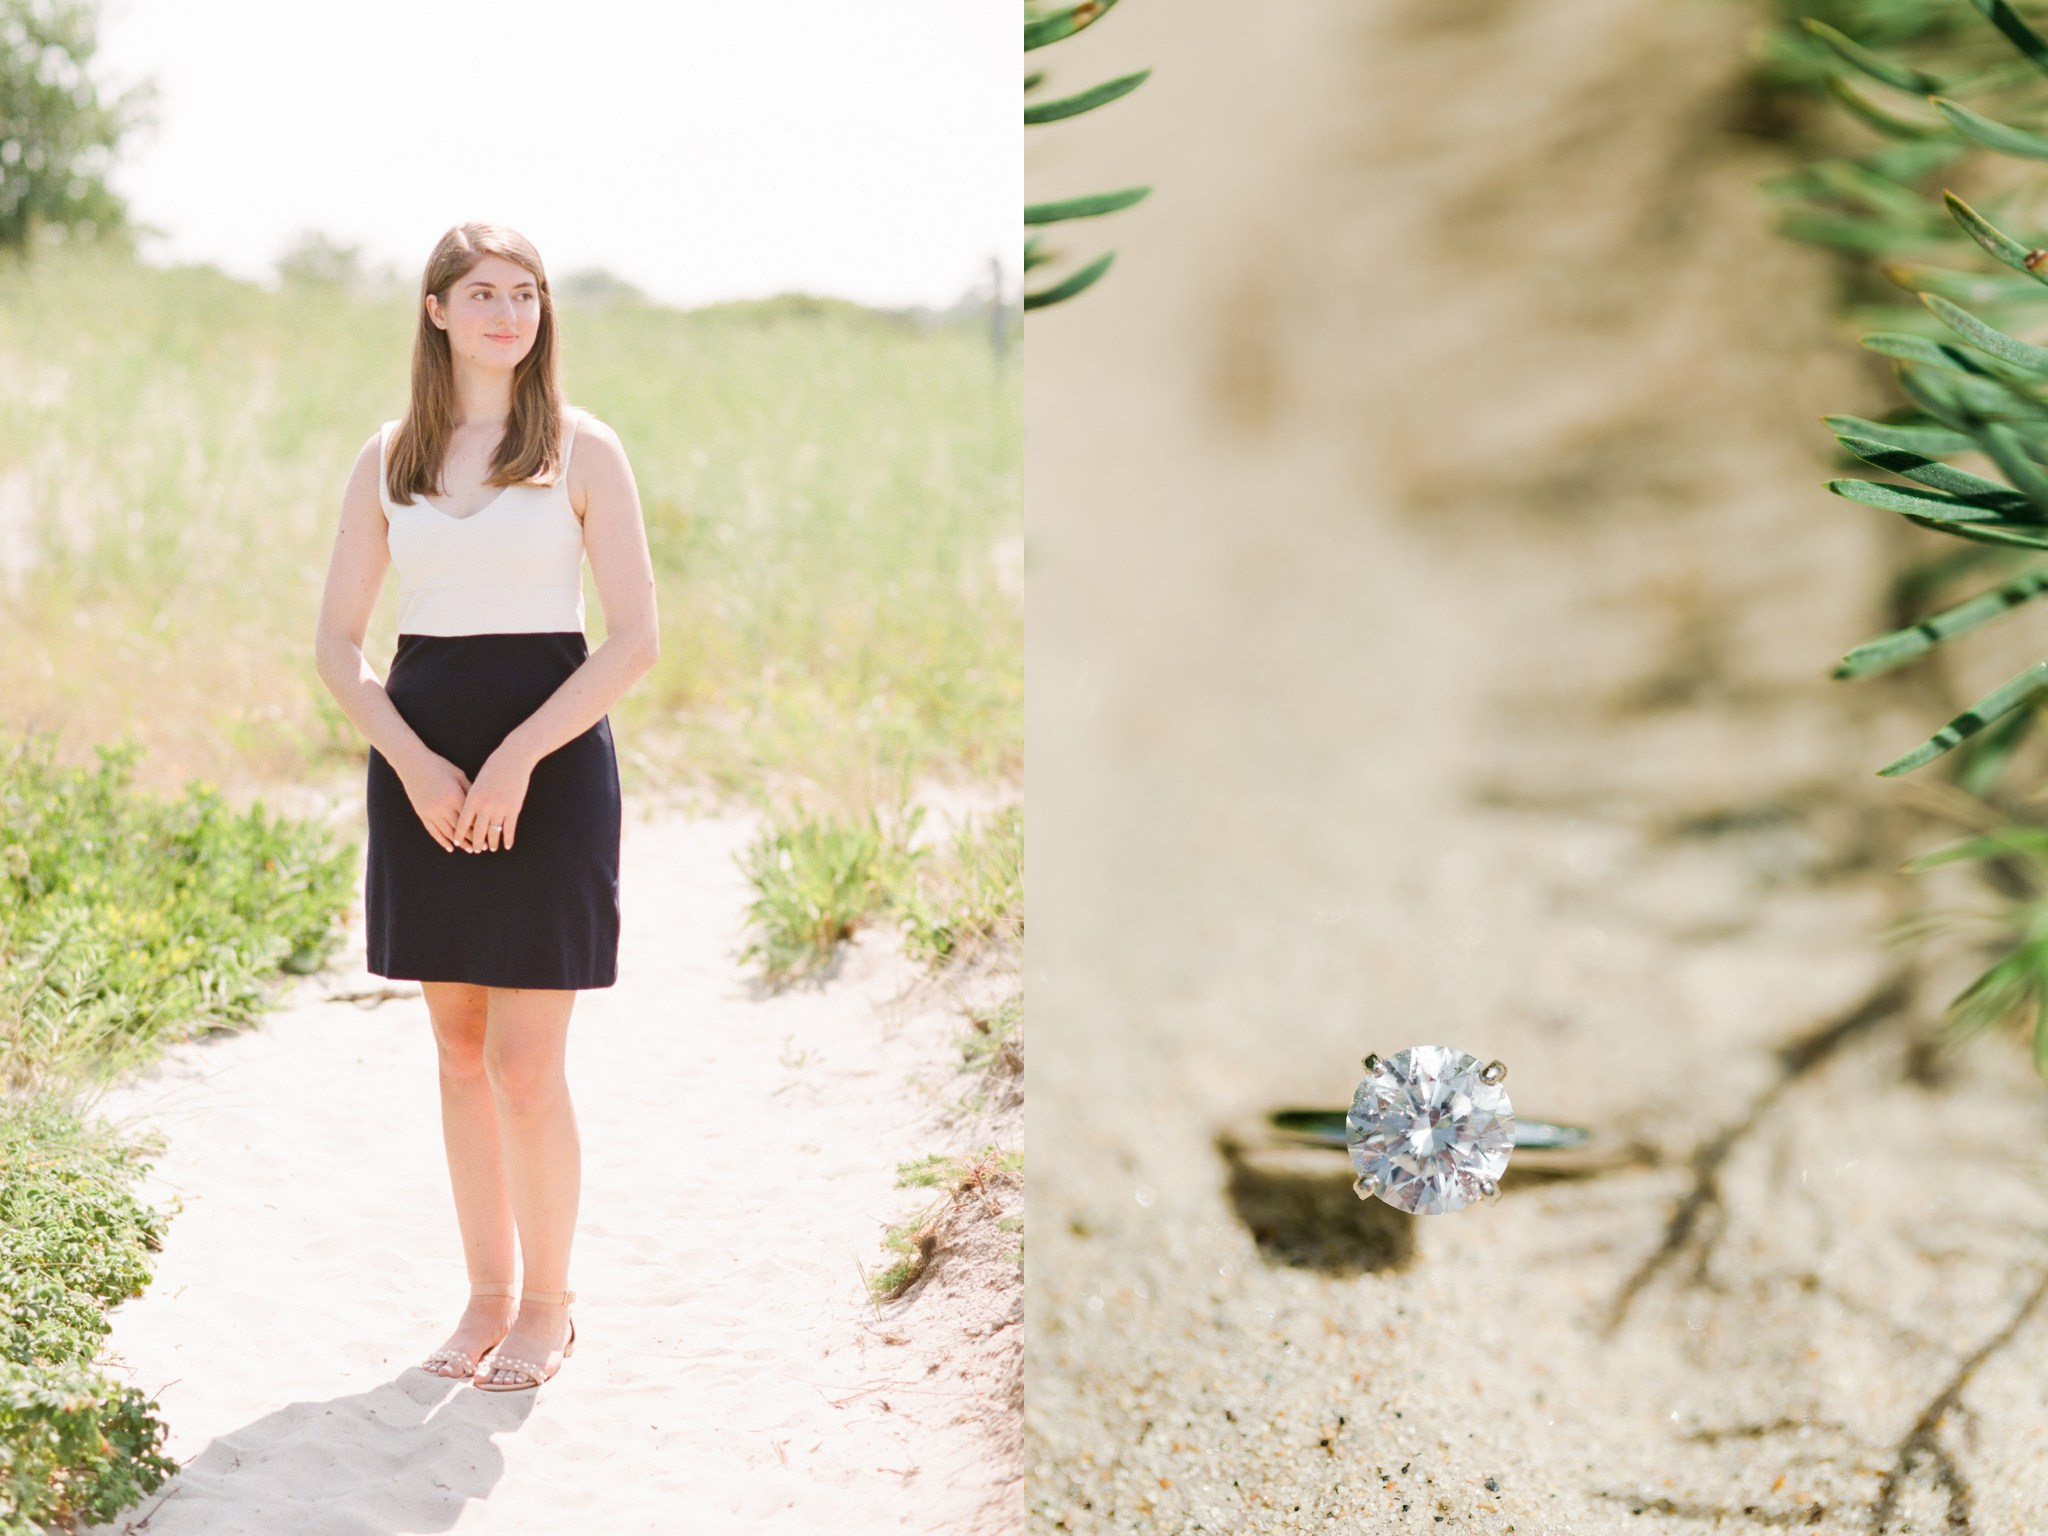 crane_beach_engagement_session_00008.JPG